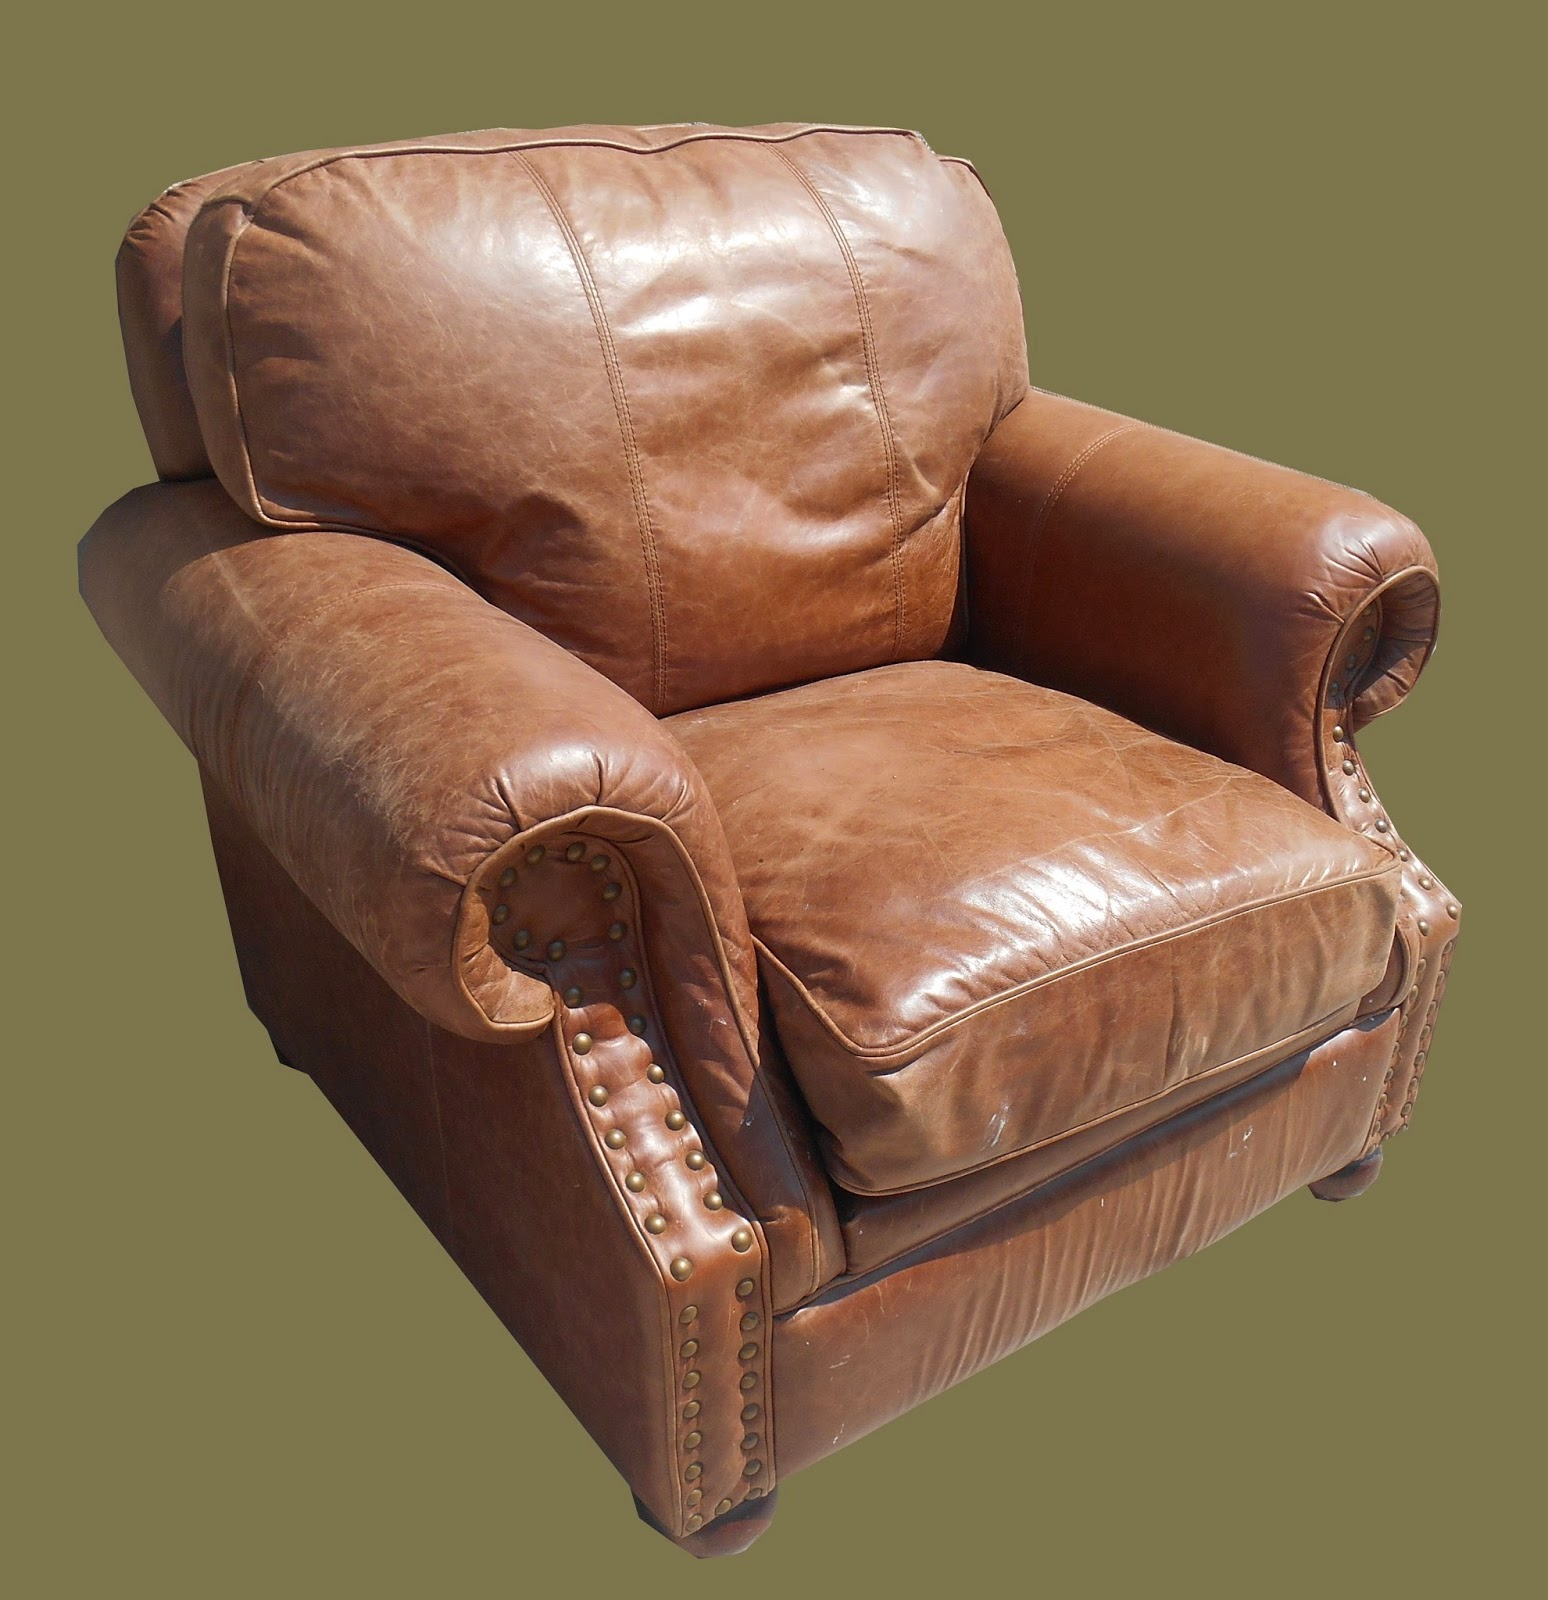 Admirable Uhuru Furniture Collectibles Cognac Leather Club Chair W Gmtry Best Dining Table And Chair Ideas Images Gmtryco